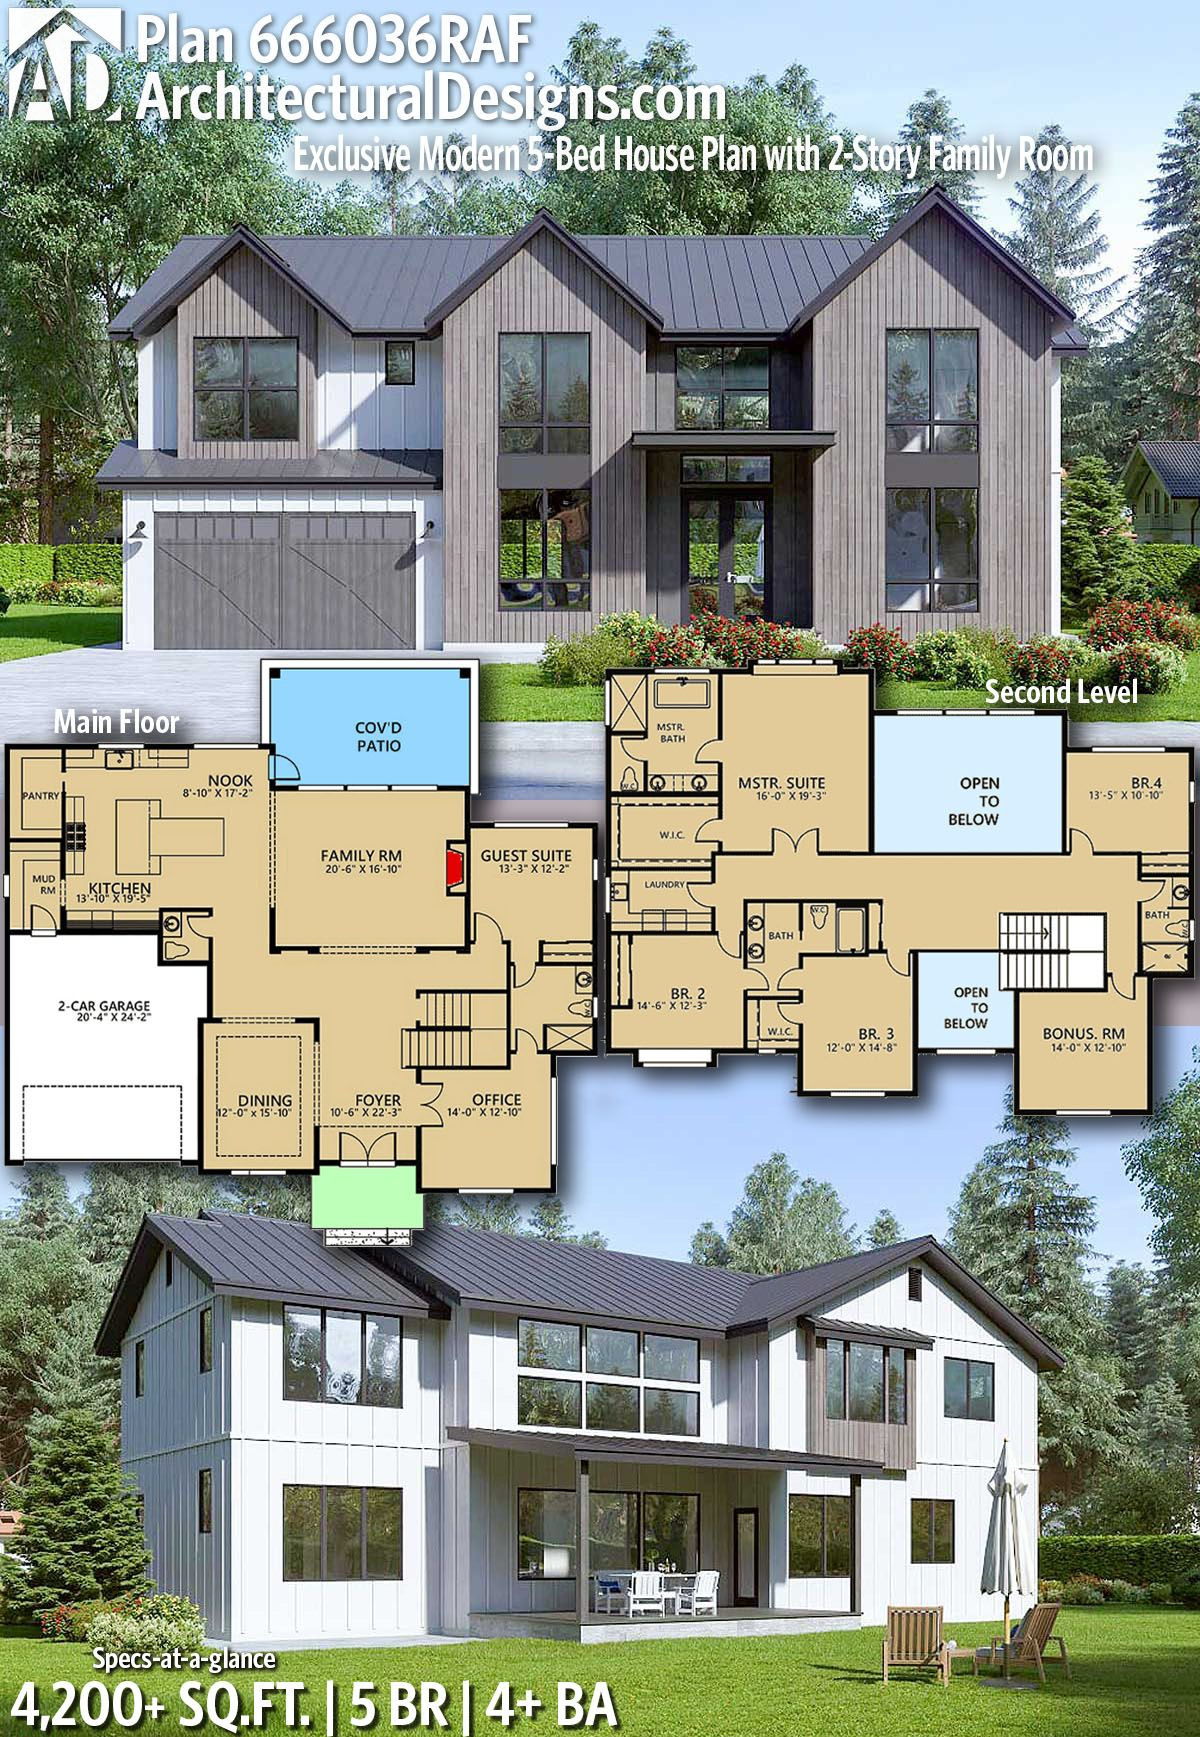 Modern 2 Story House Best Of Plan Raf Modern 5 Bed House Plan with 2 Story Foyer